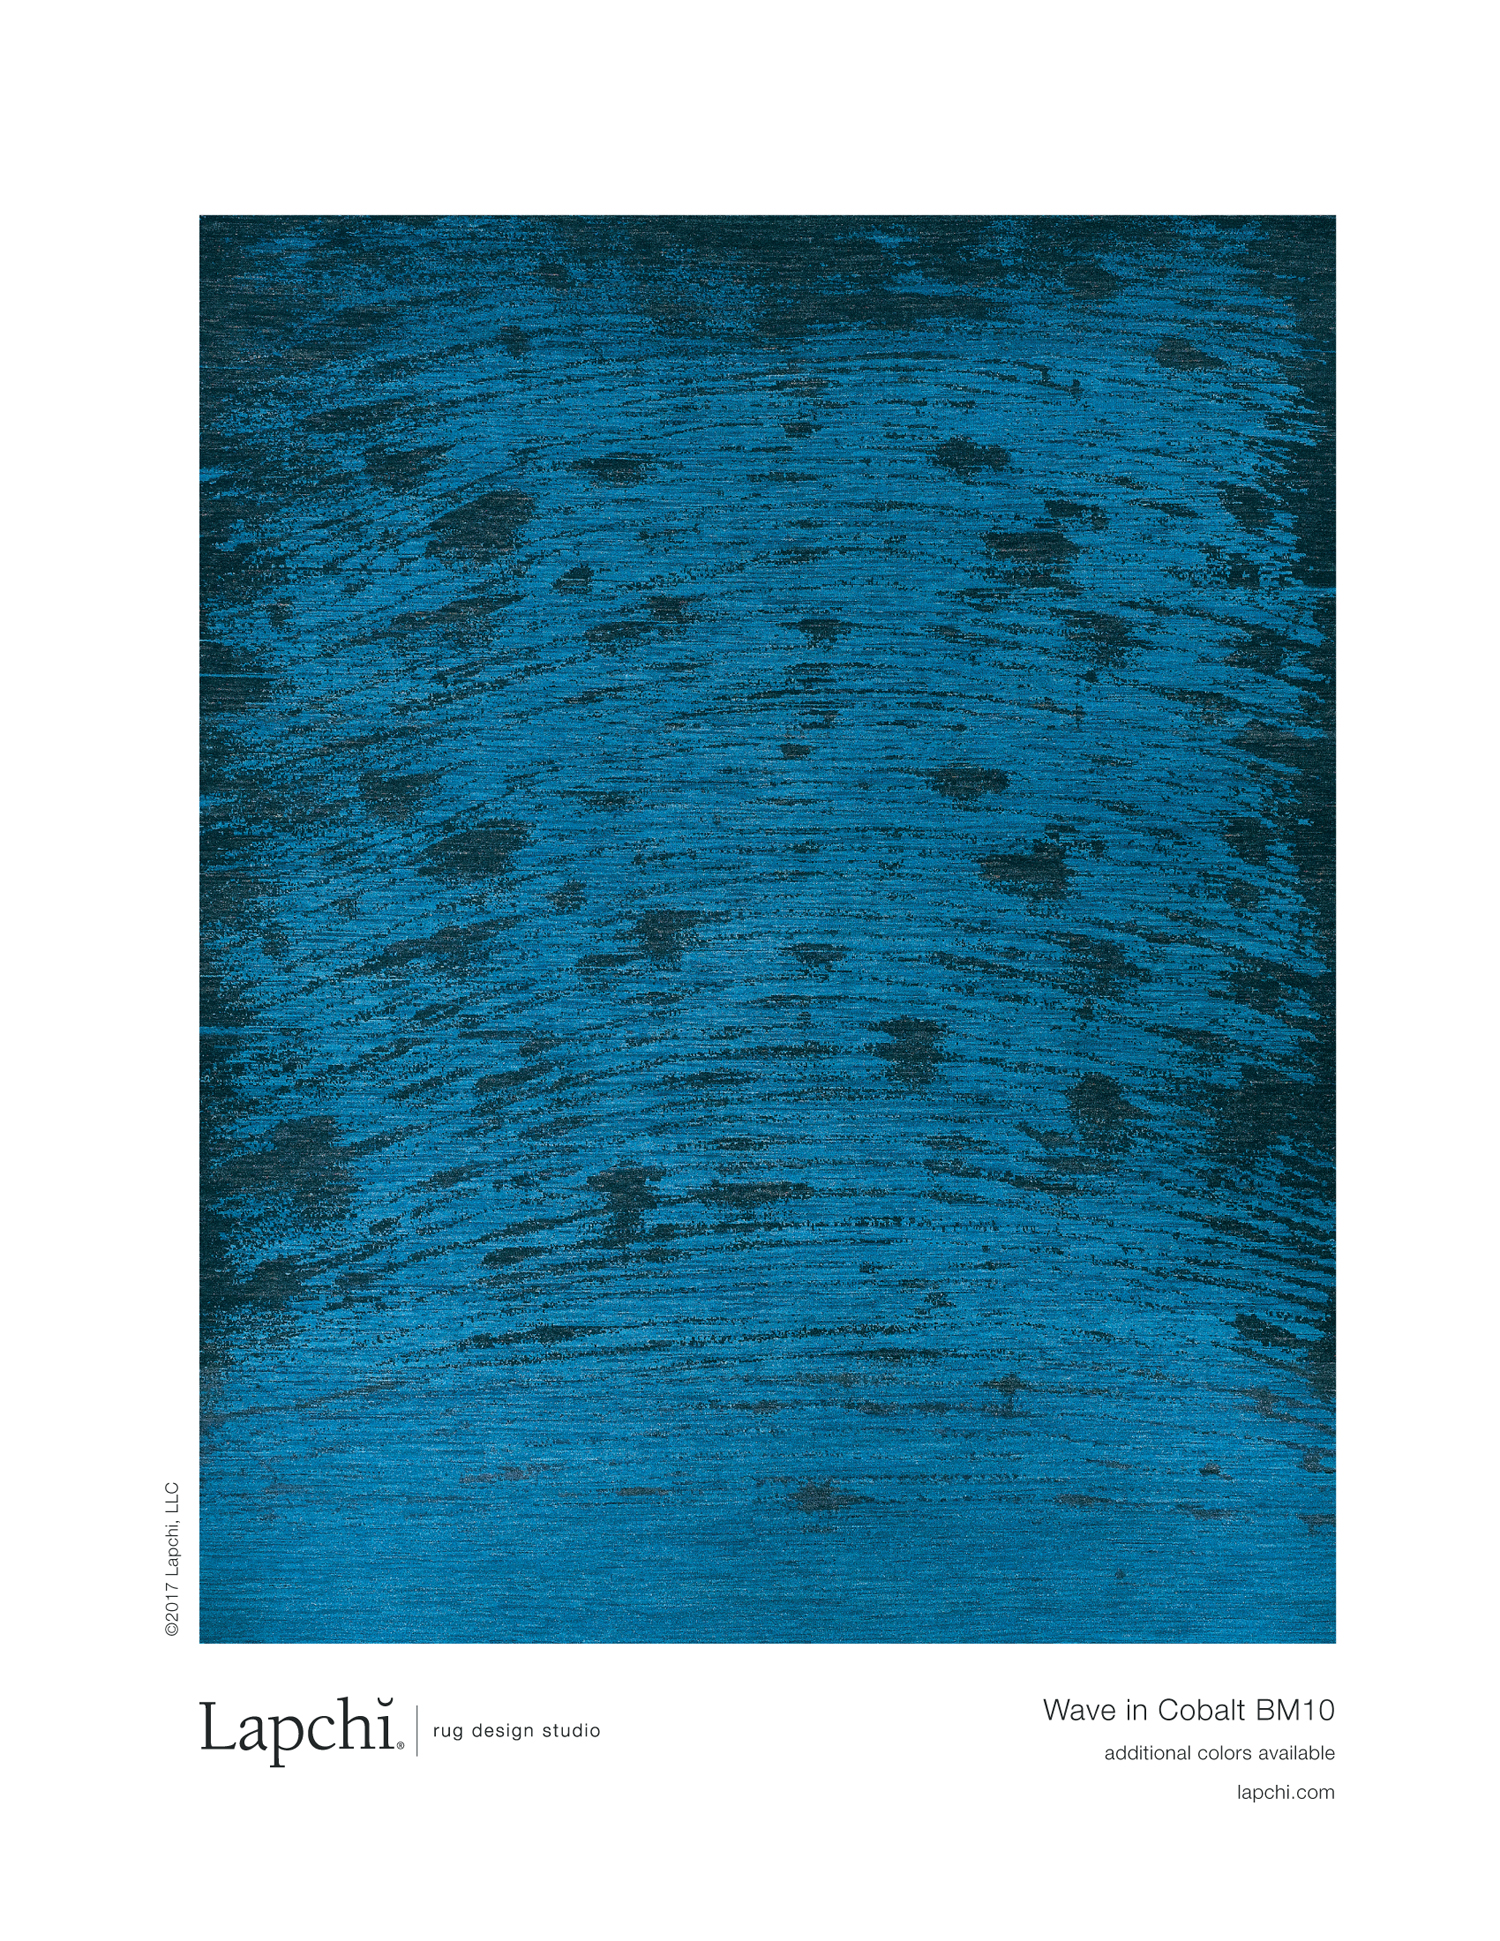 Wave area rug in cobalt from Lapchi rug design studio.